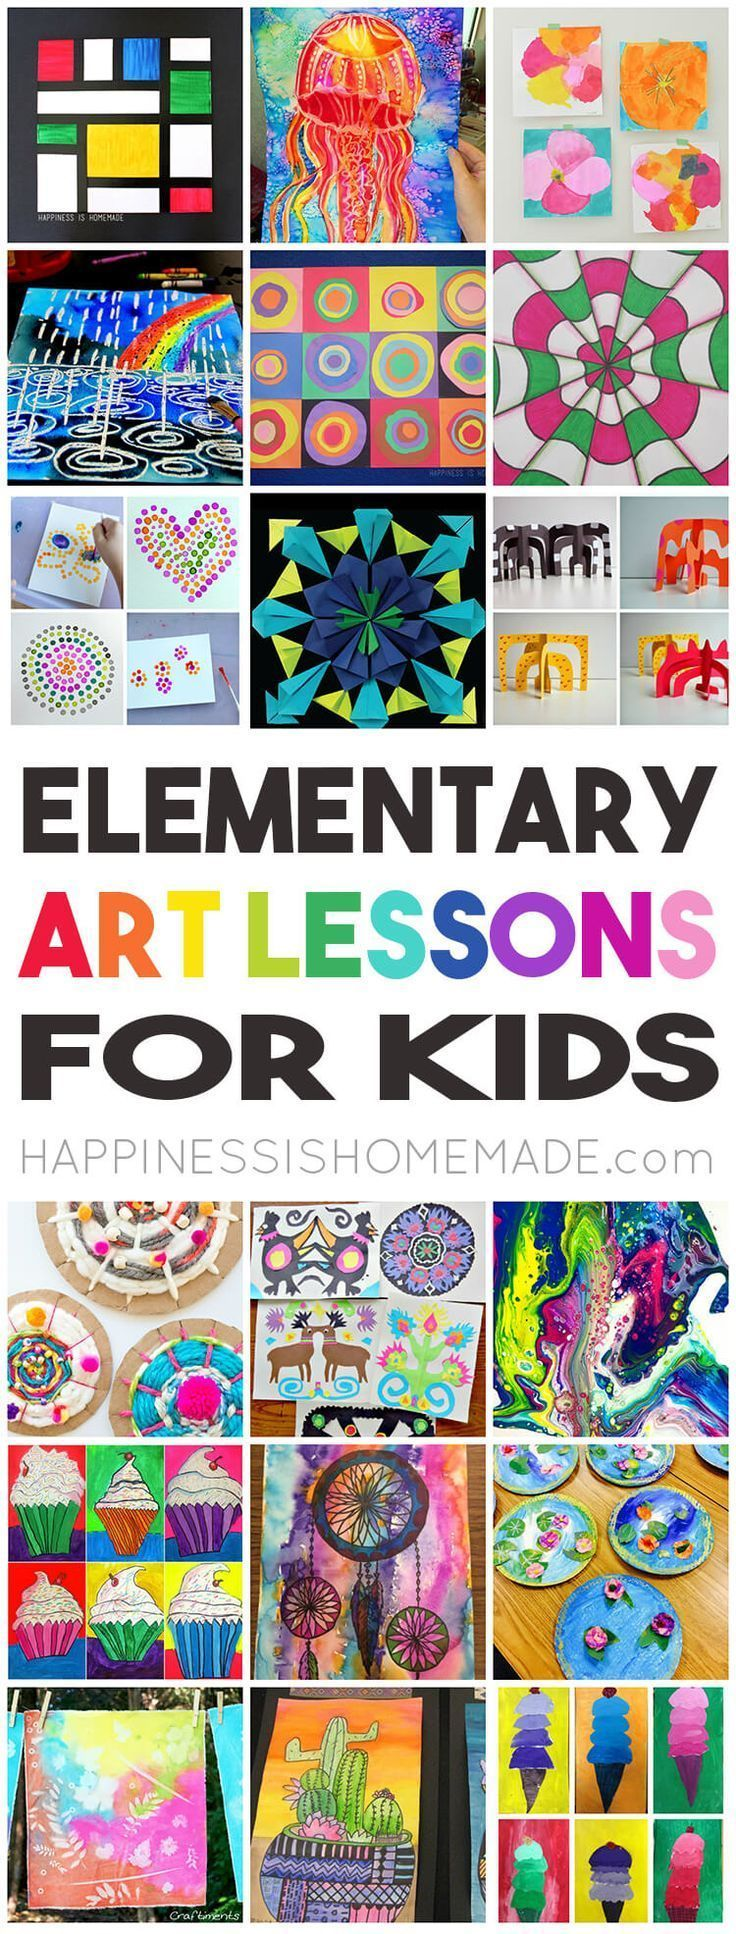 36 Elementary Art Lessons for Kids - one for every week of the school year!